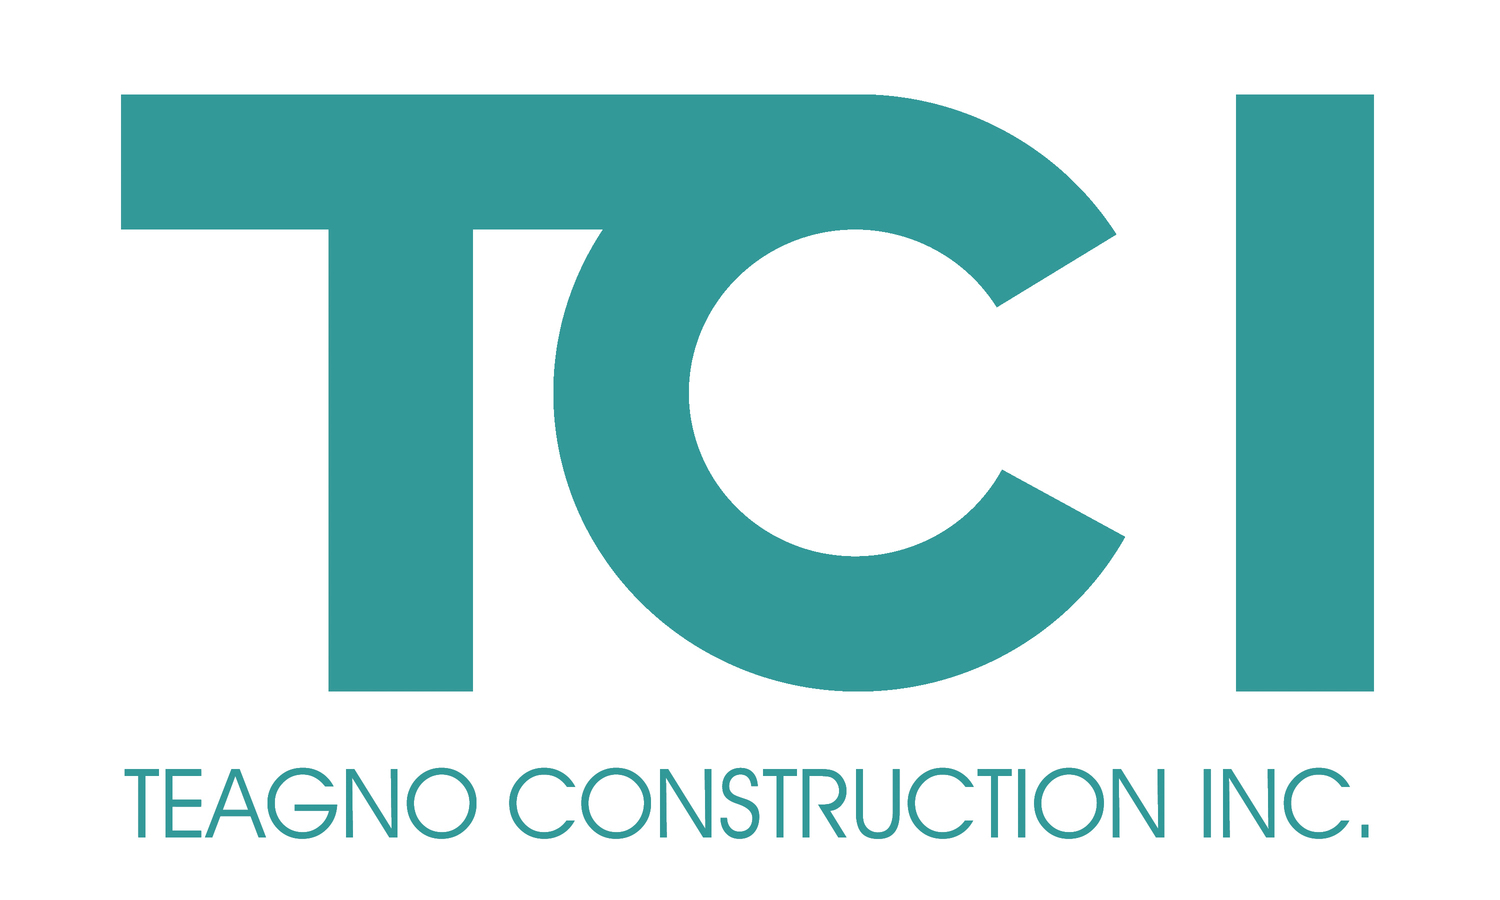 Teagno Construction Inc.